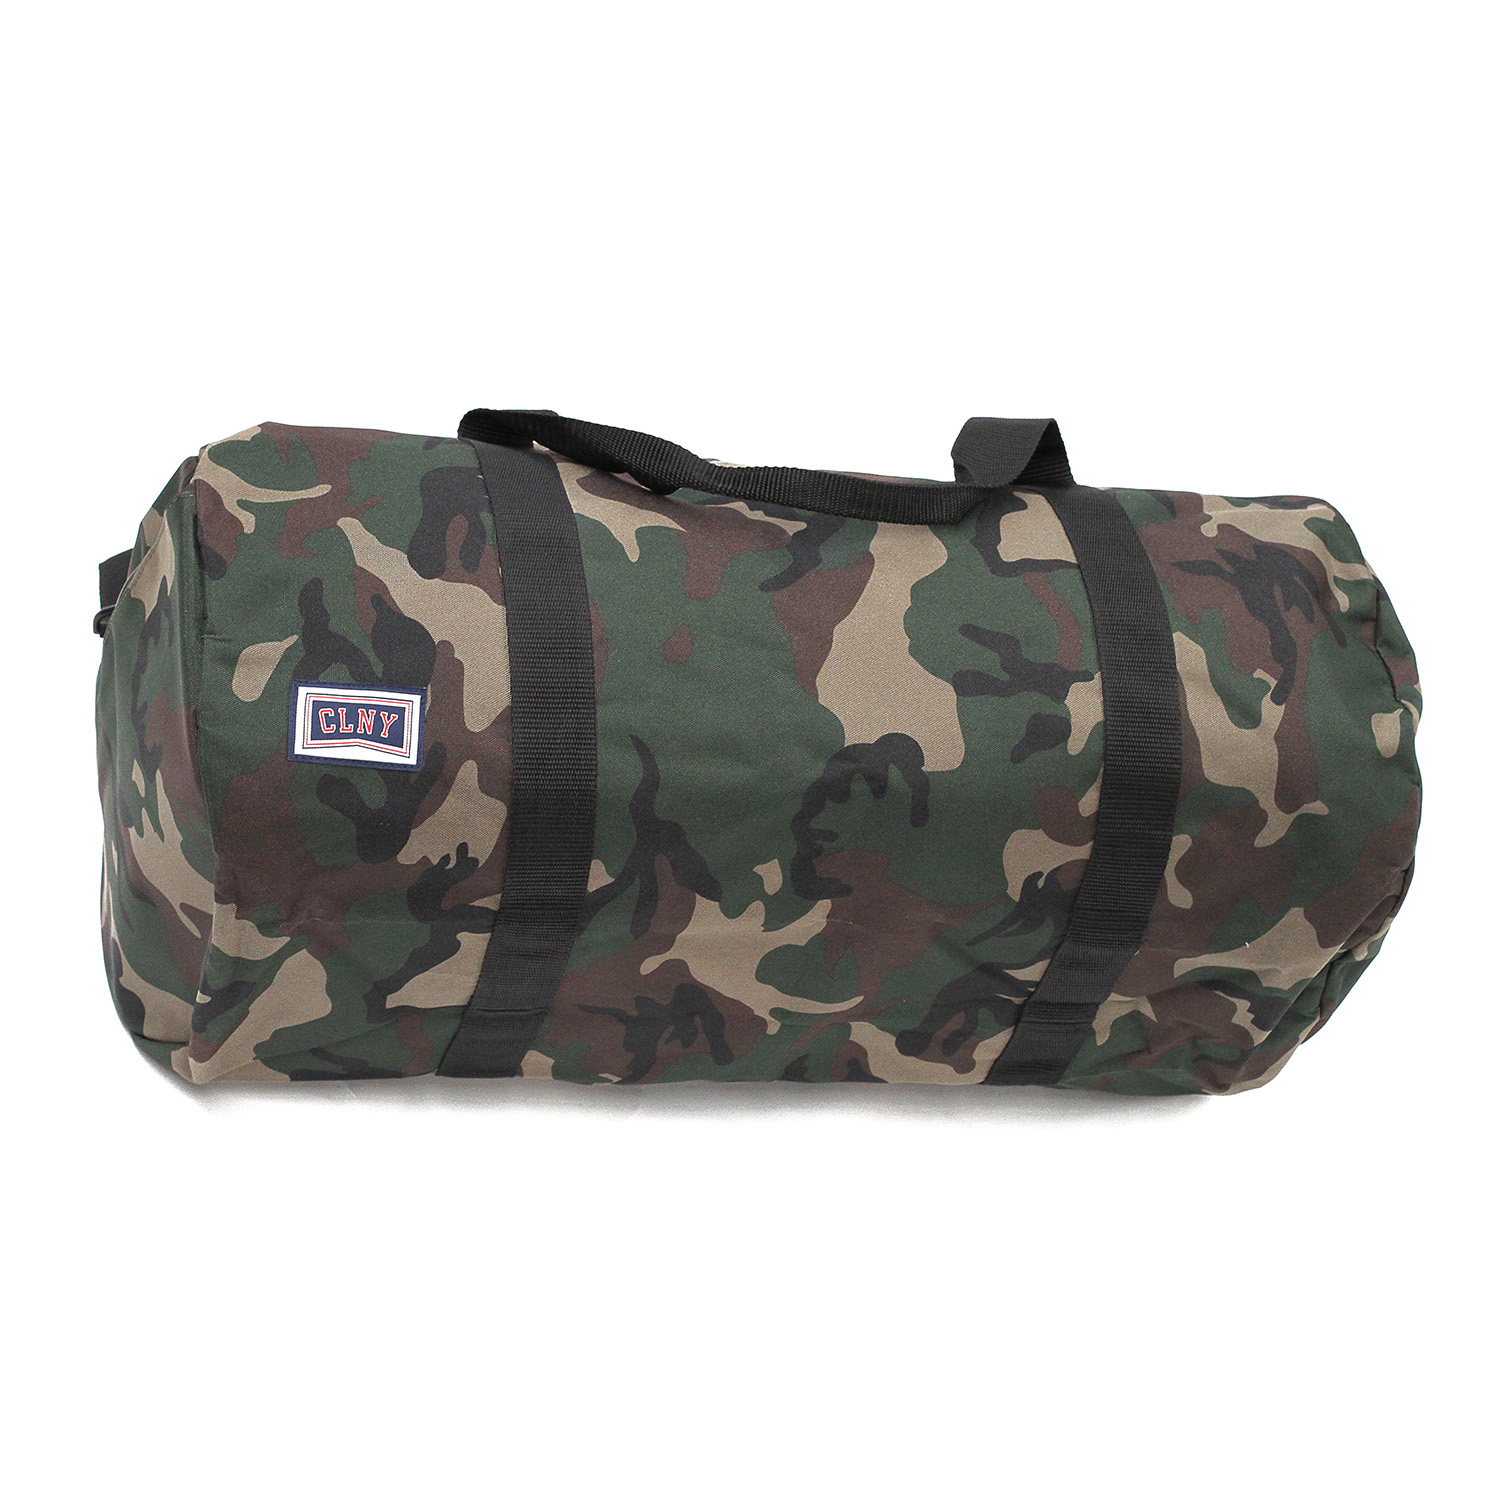 Ivy League Duffel Bag